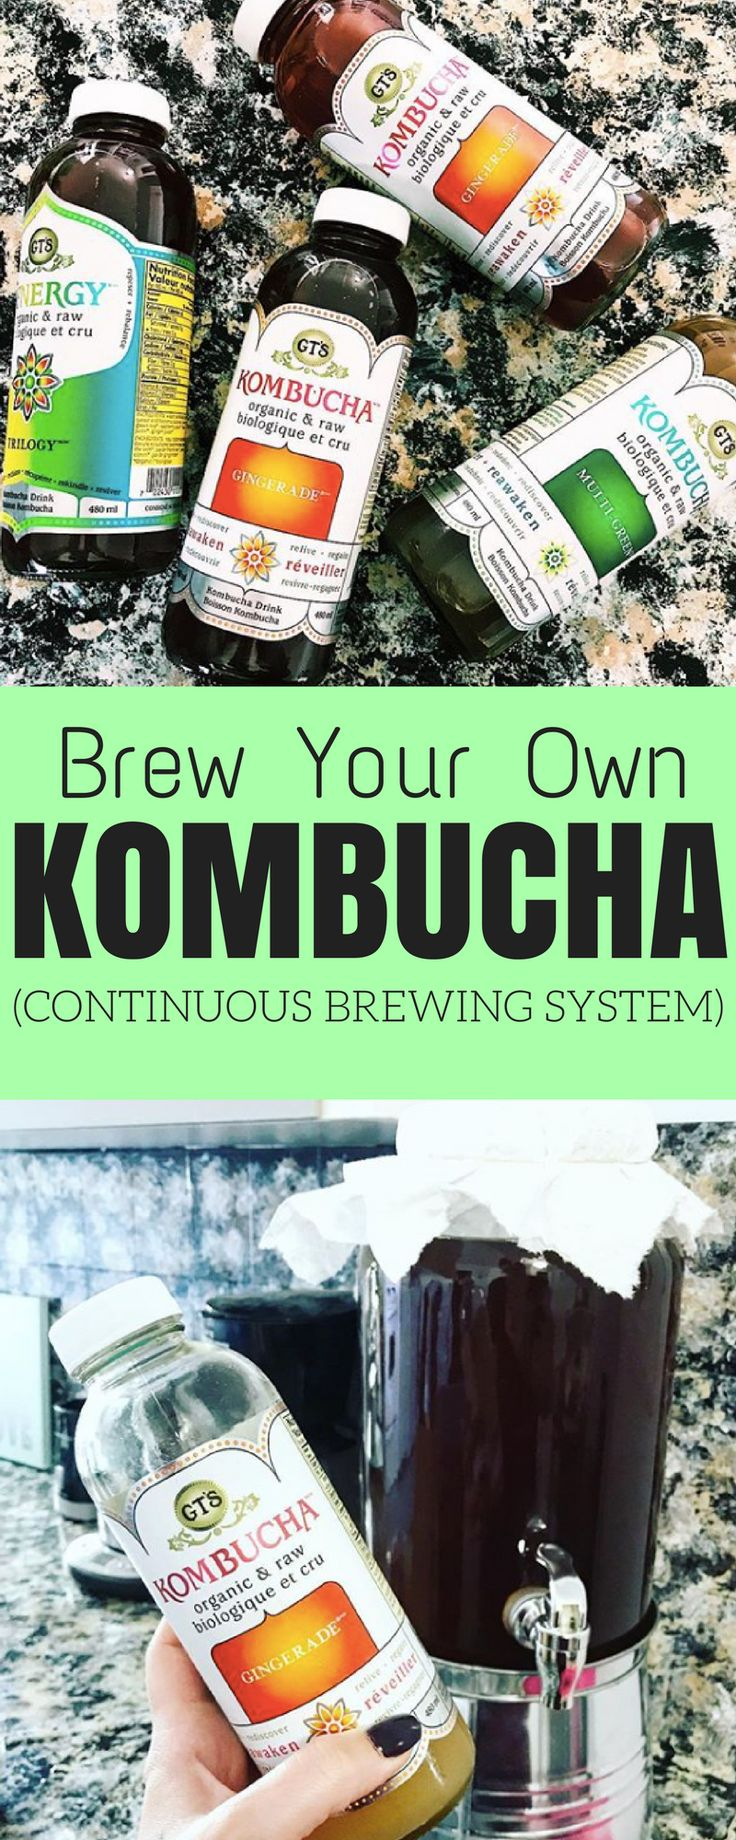 Brew your own Kombucha with a continuous brewing system